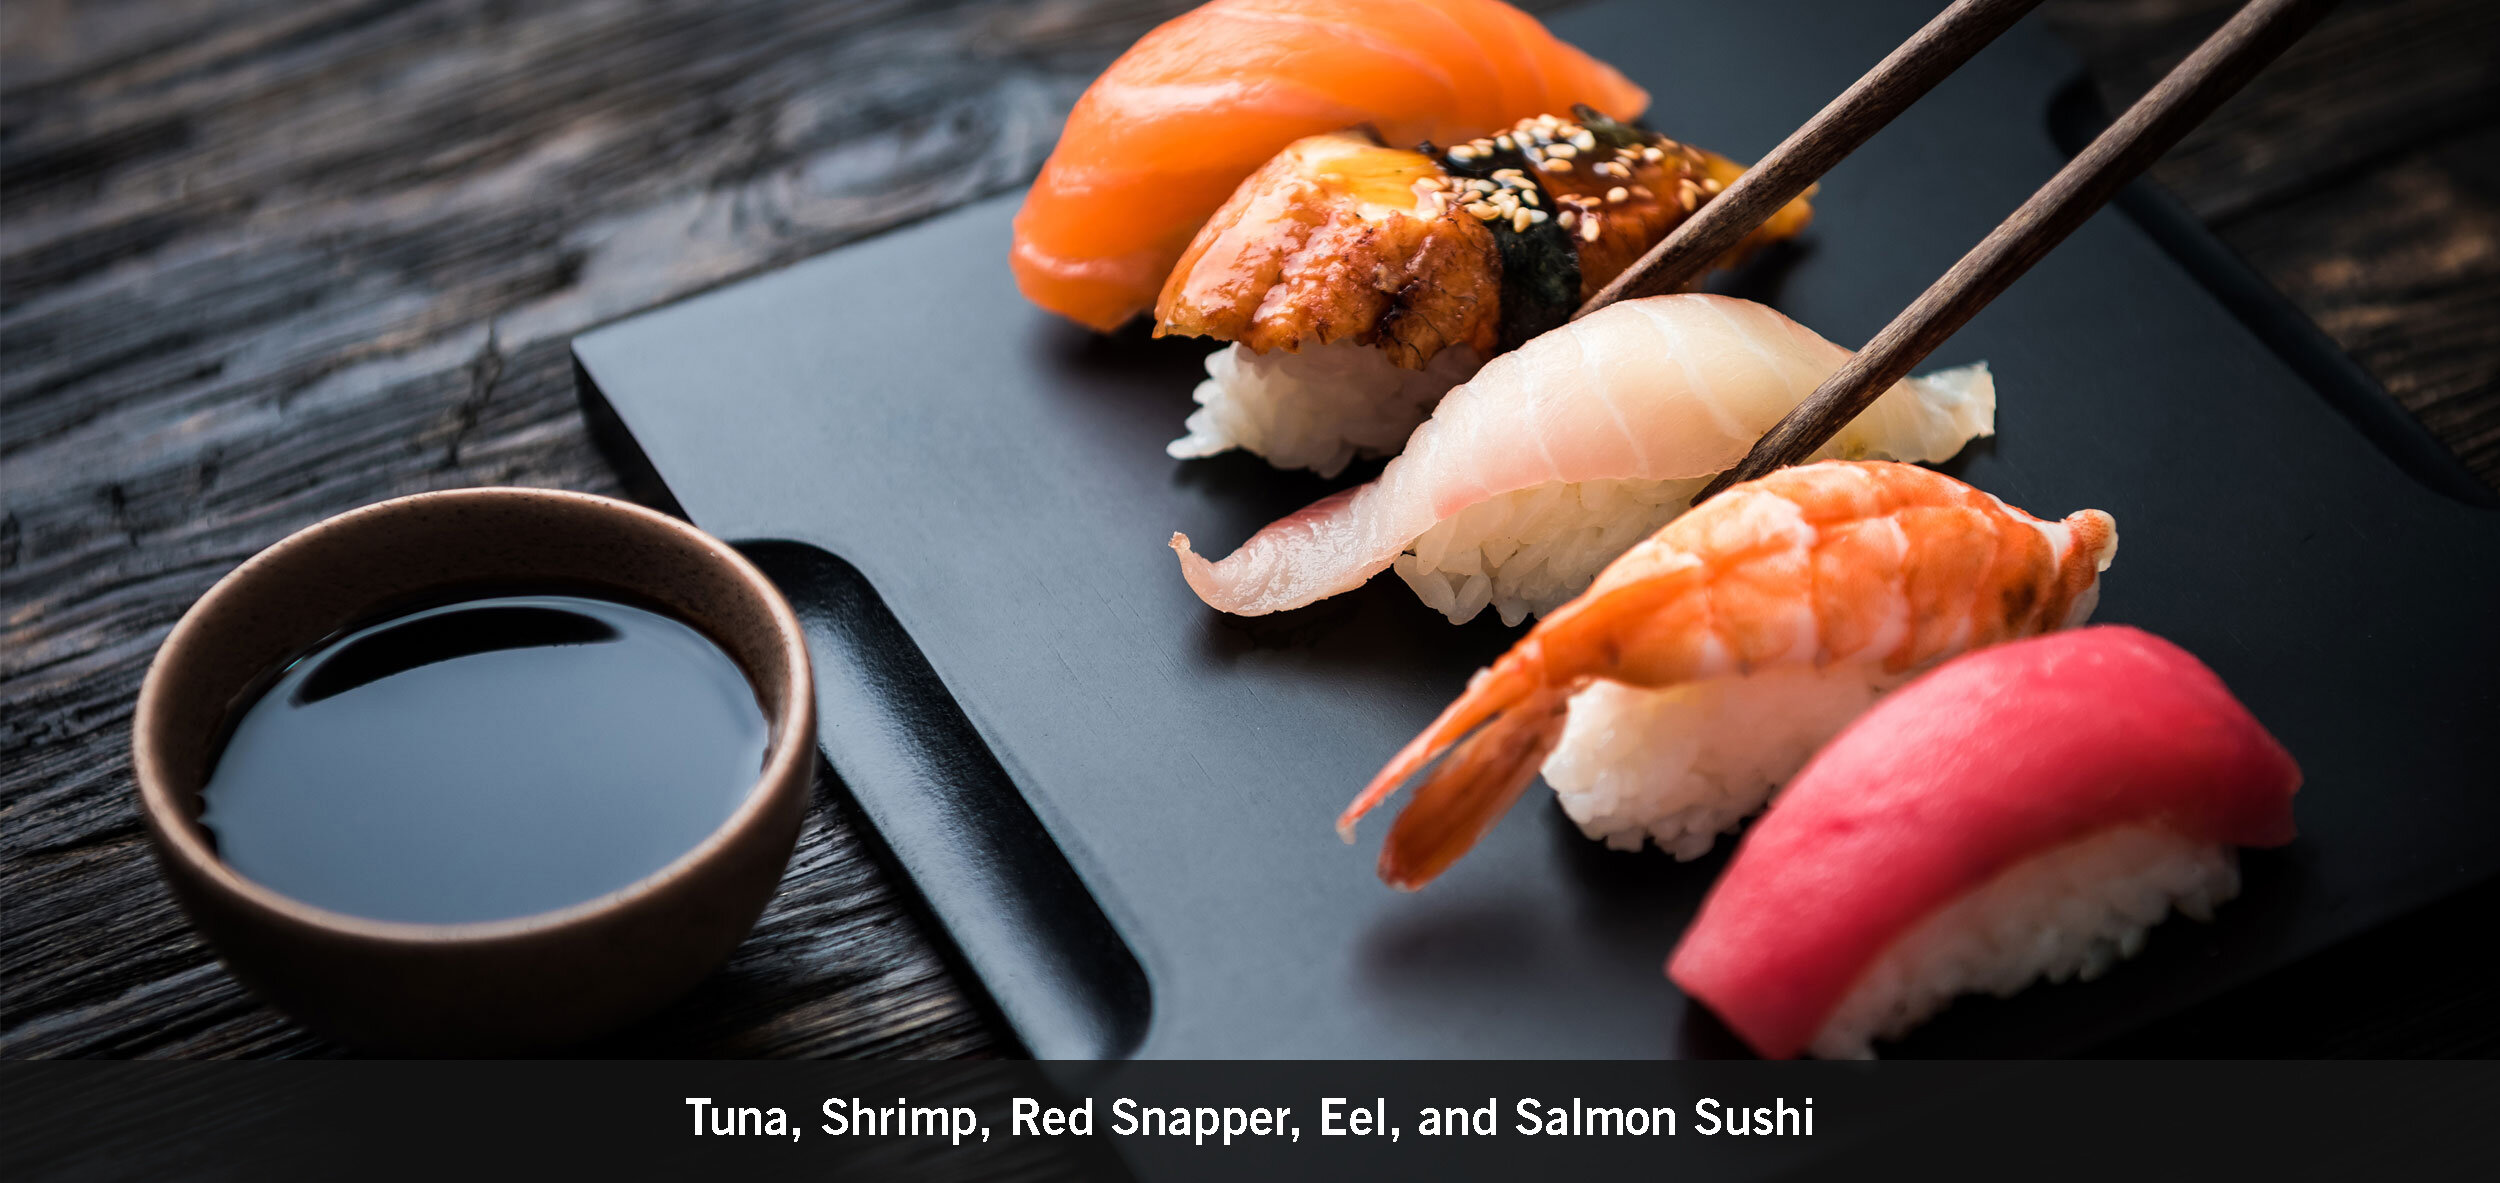 Tuna, Shrimp, Red Snapper, Eel, and Salmon Sushi